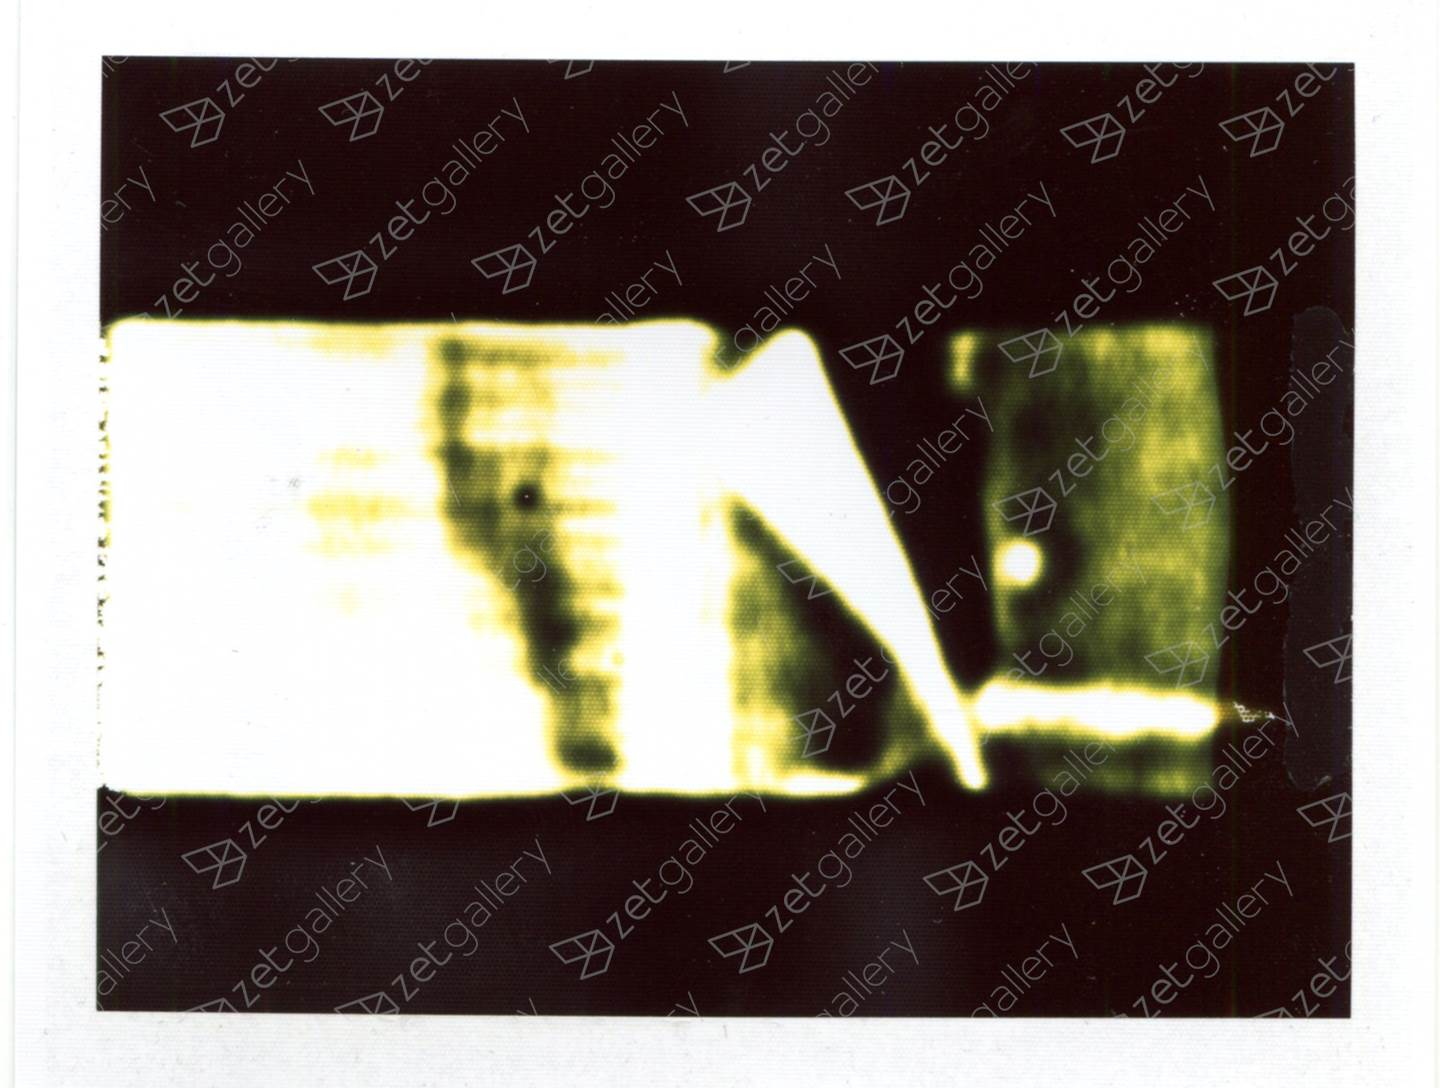 Polaroid Land (2), original Abstract Analog Photography by Yorgos Kapsalakis